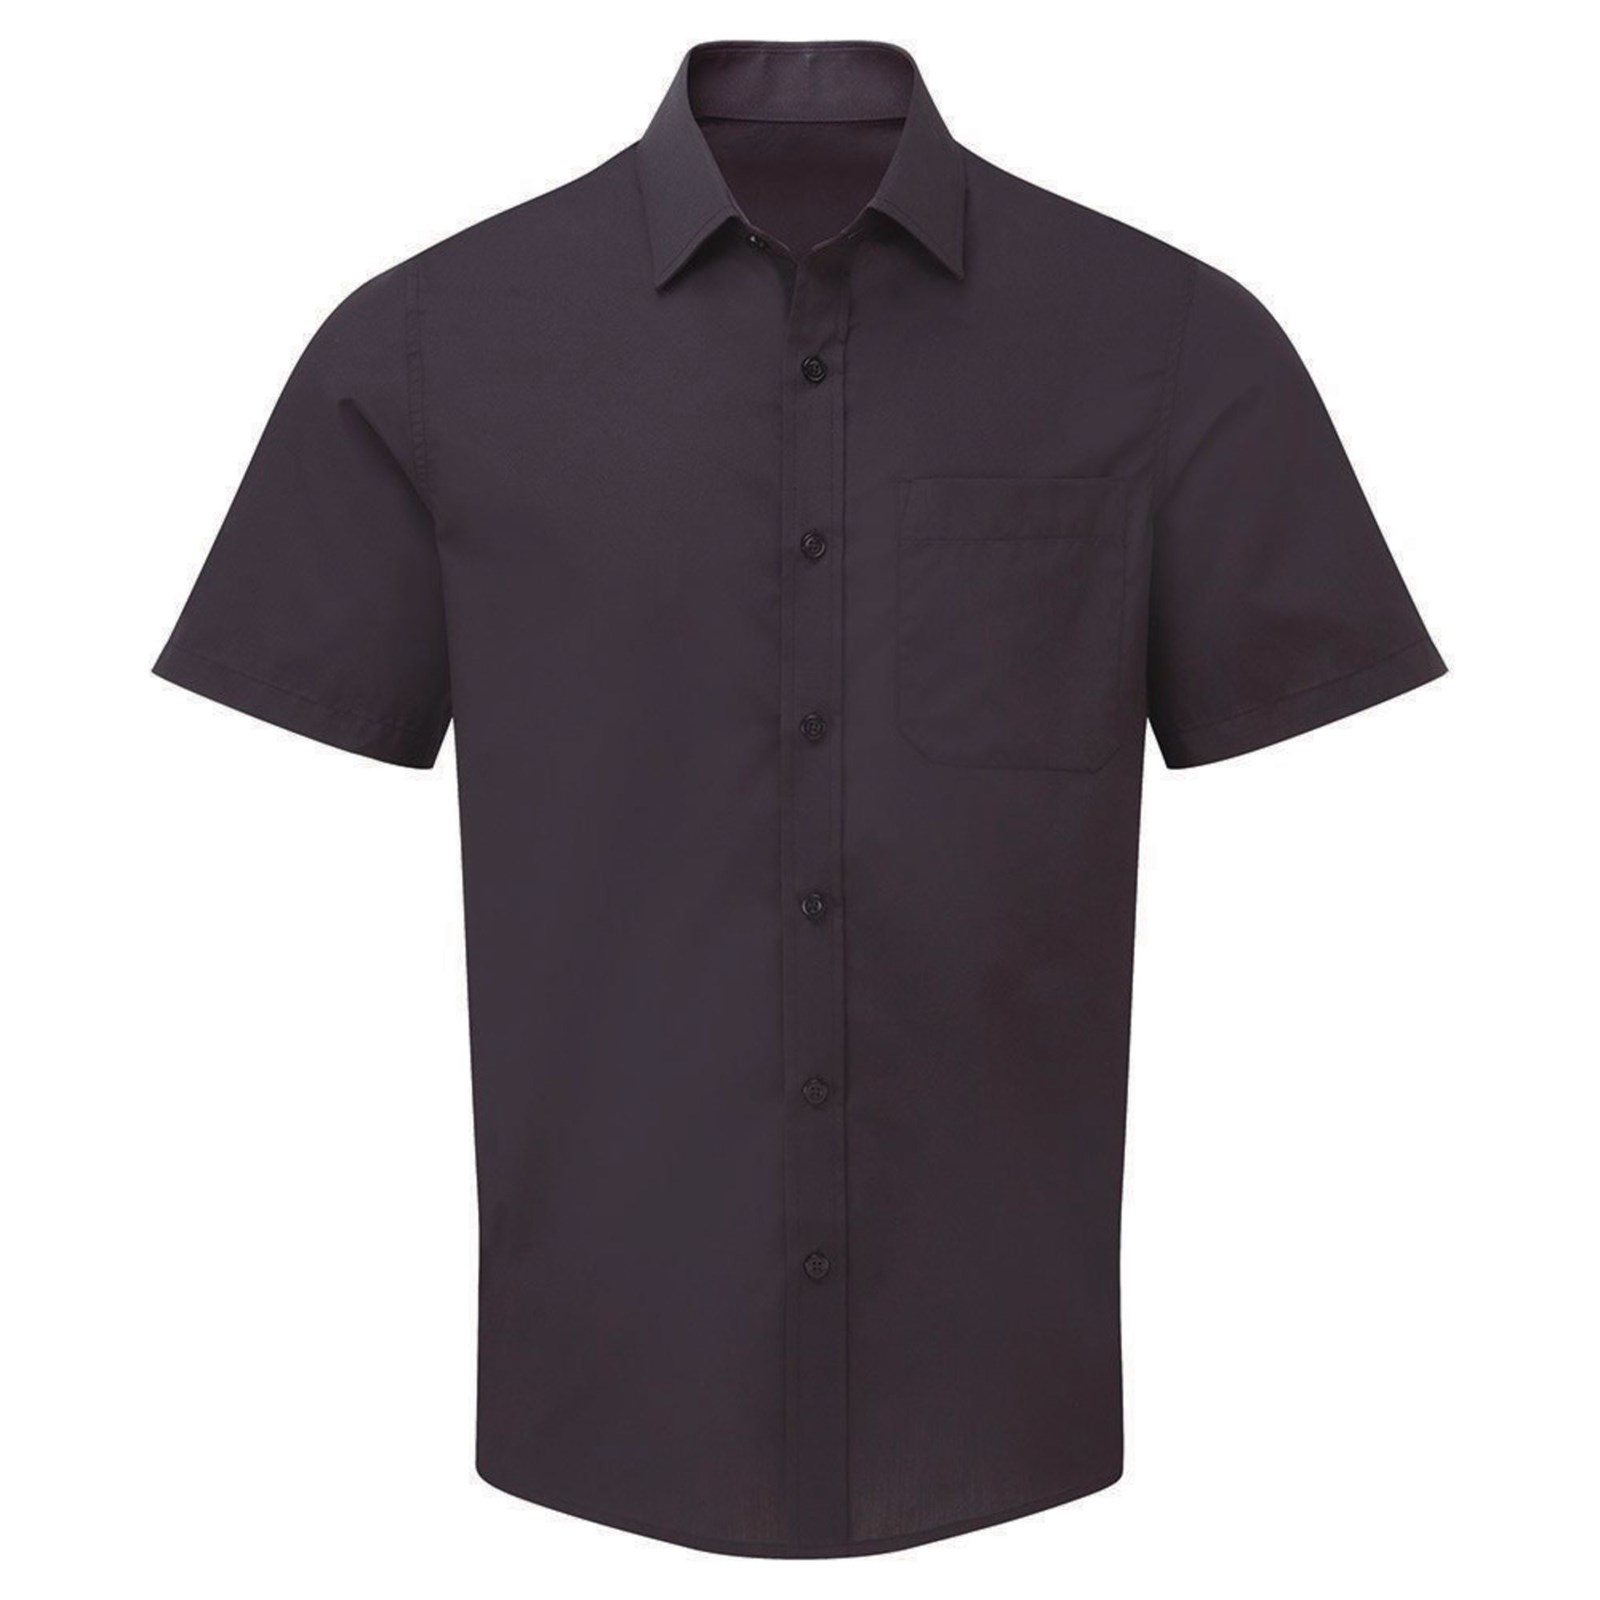 Shop eBay for great deals on Regular Size Spread Collar Dress Shirts for Men 17 1/2 Dress Shirt. You'll find new or used products in Regular Size Spread Collar Dress Shirts for Men 17 1/2 Dress Shirt on eBay. Free shipping on selected items.